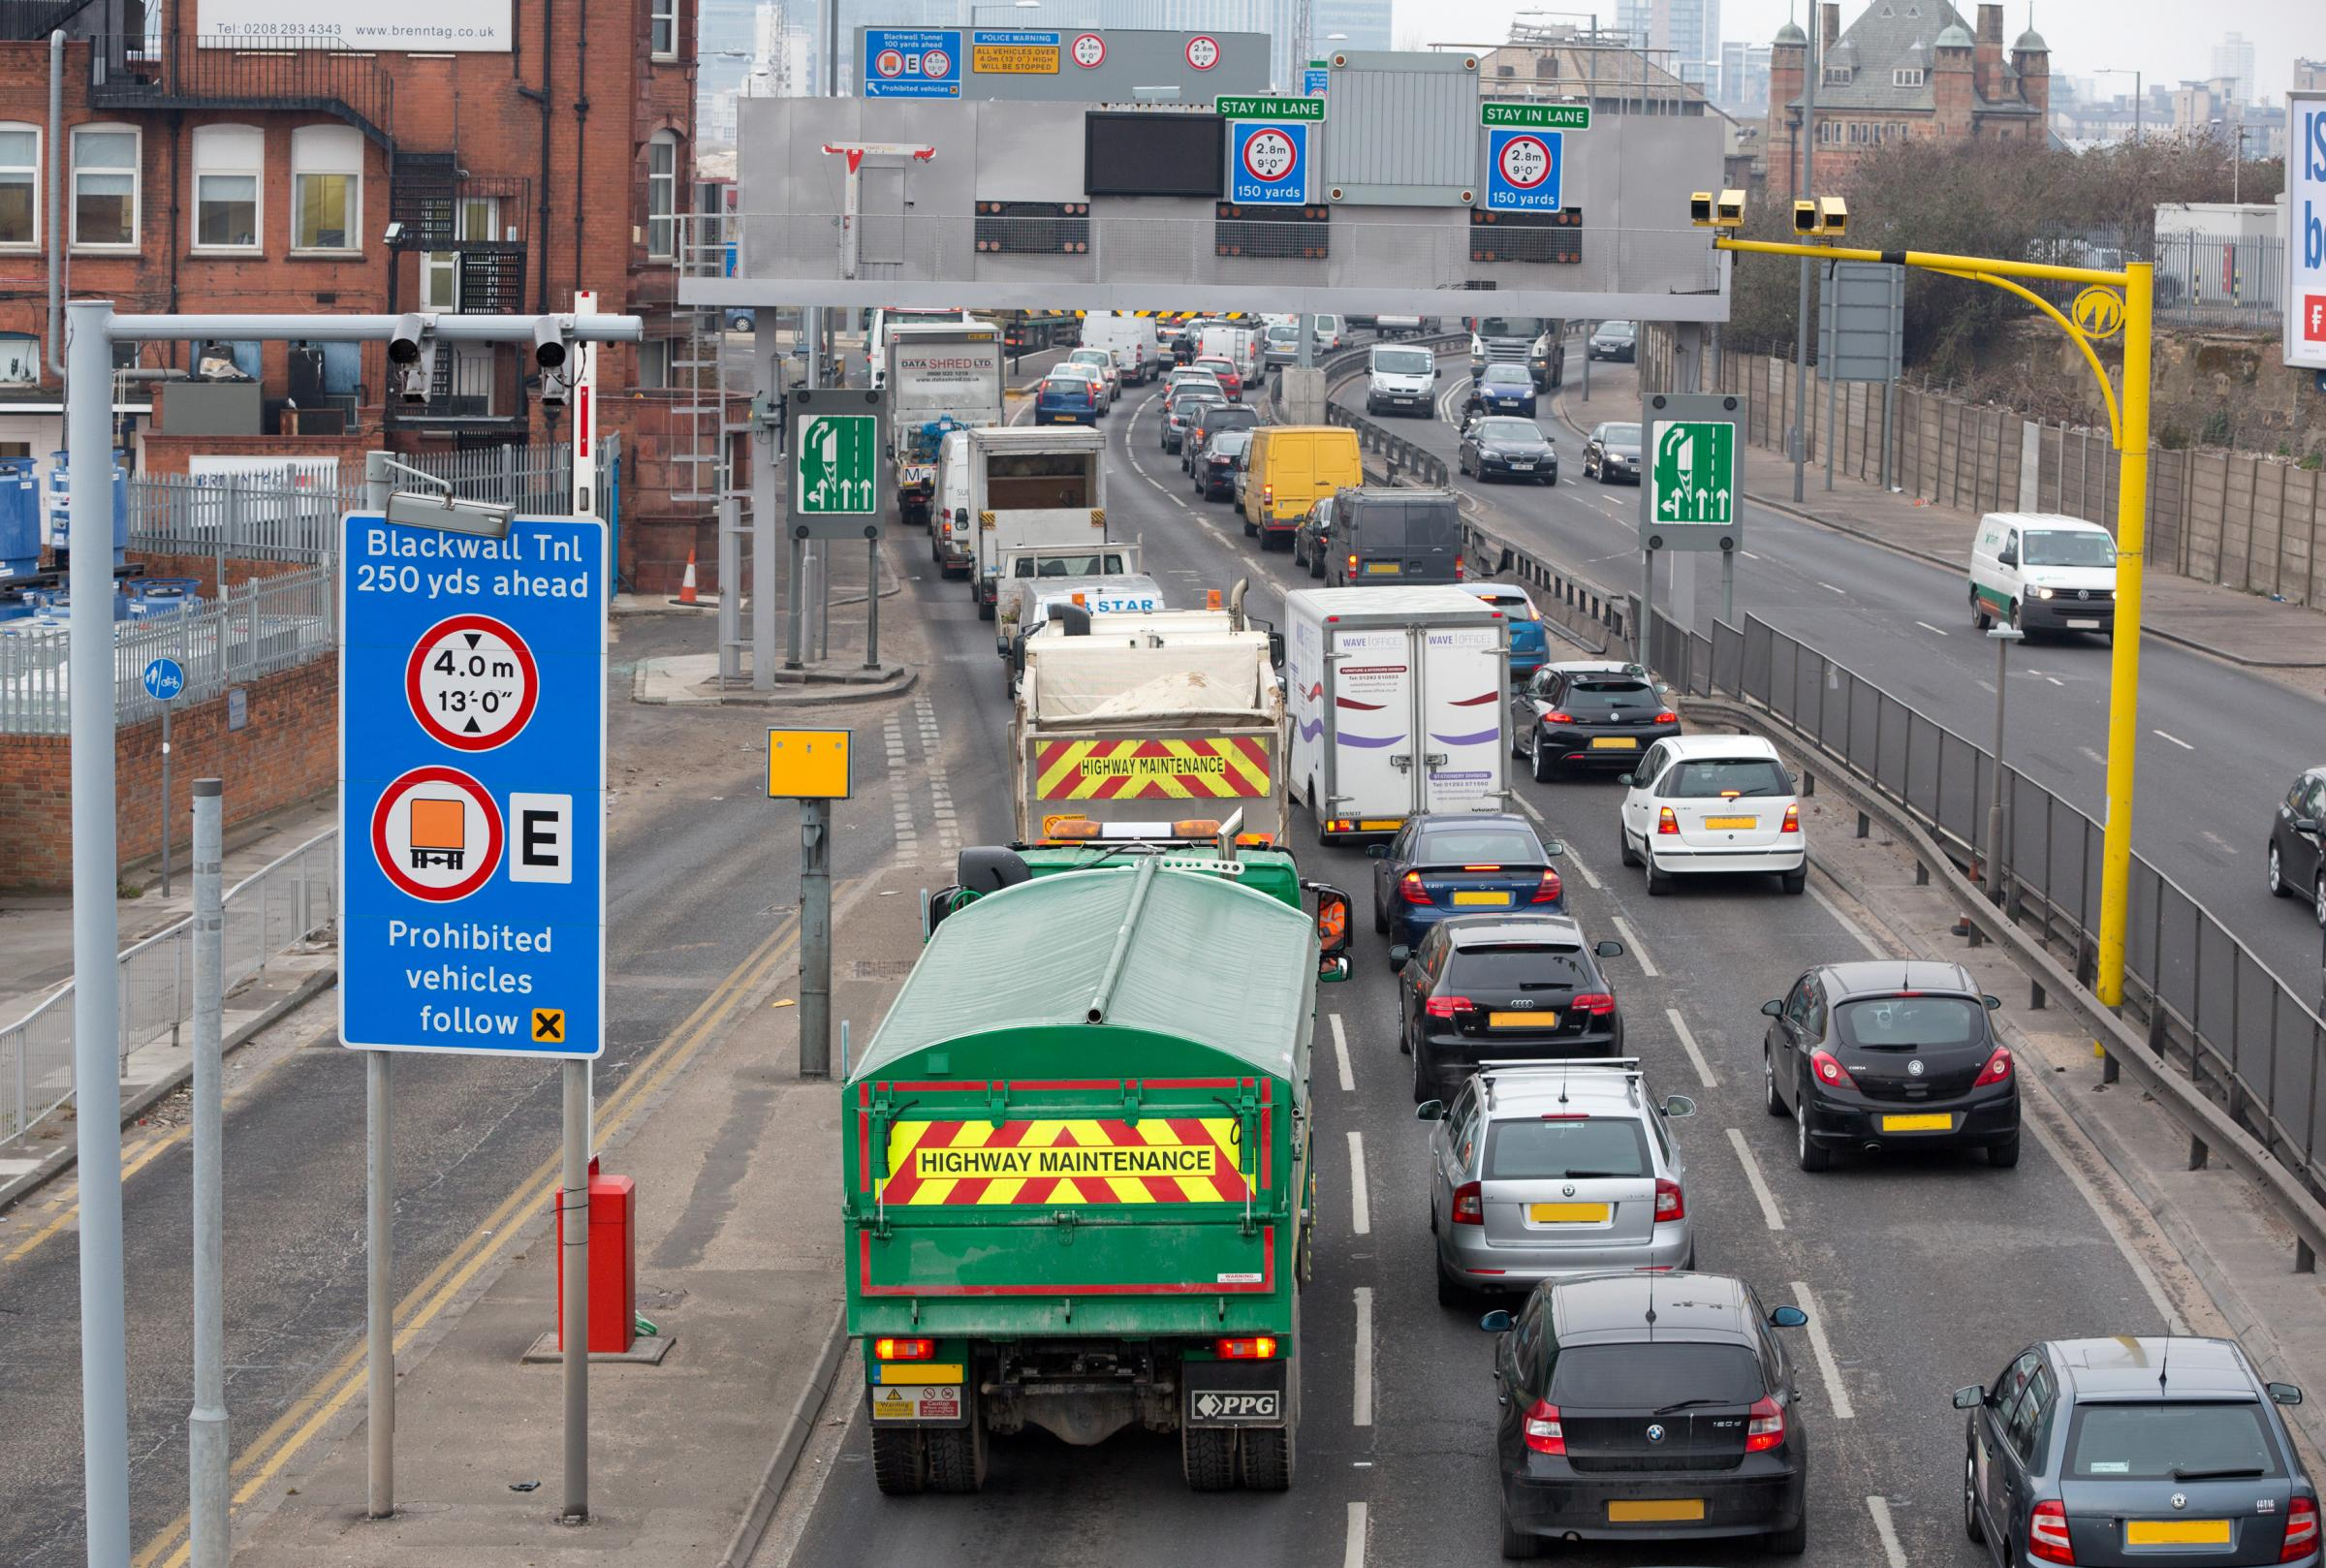 Congestion at the Blackwall Tunnel